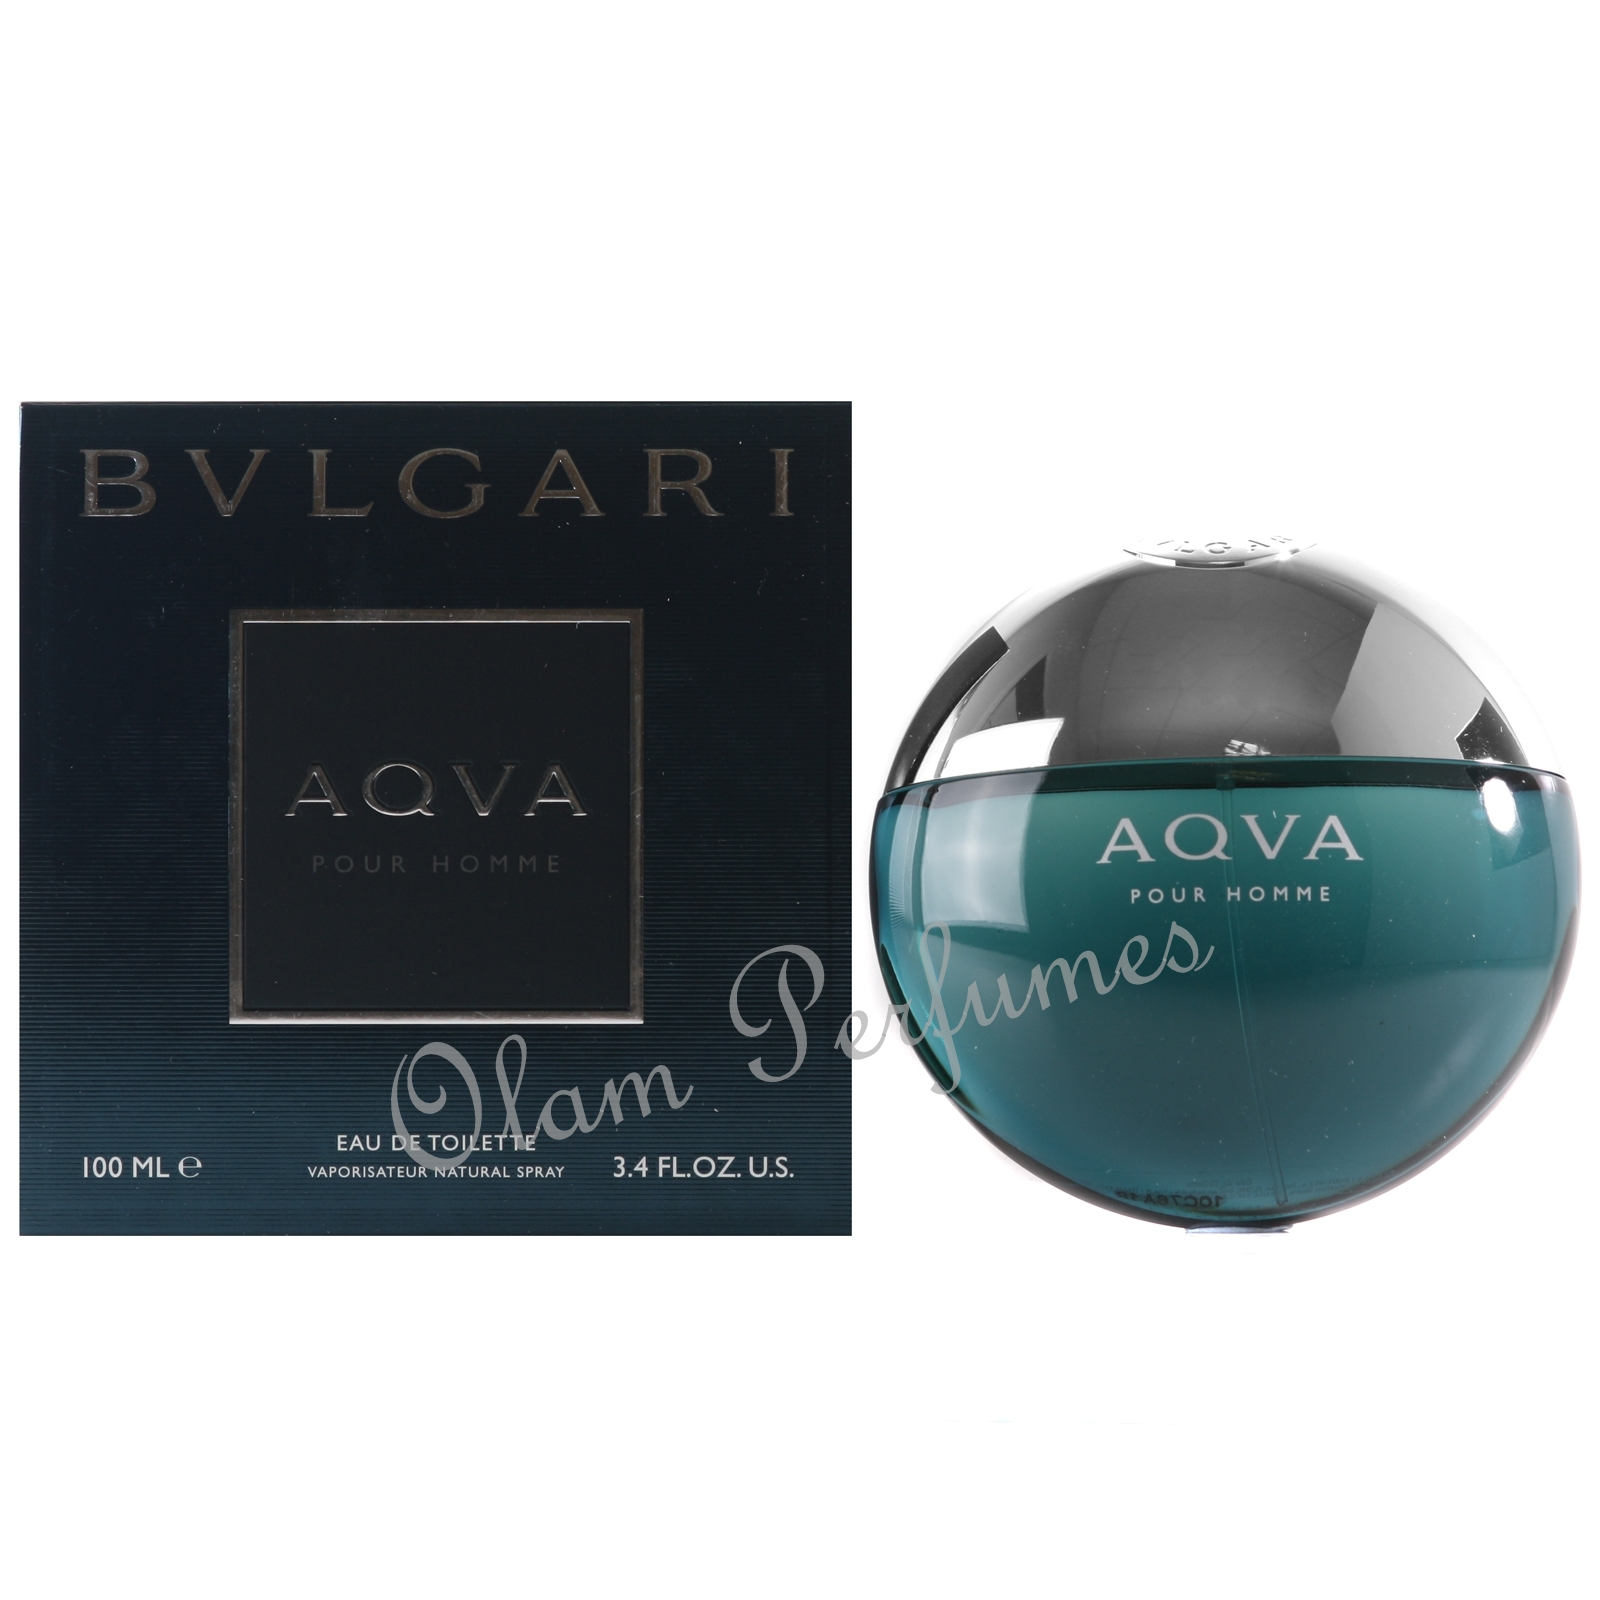 Bvlgari Aqva For Men 3.4oz 100ml